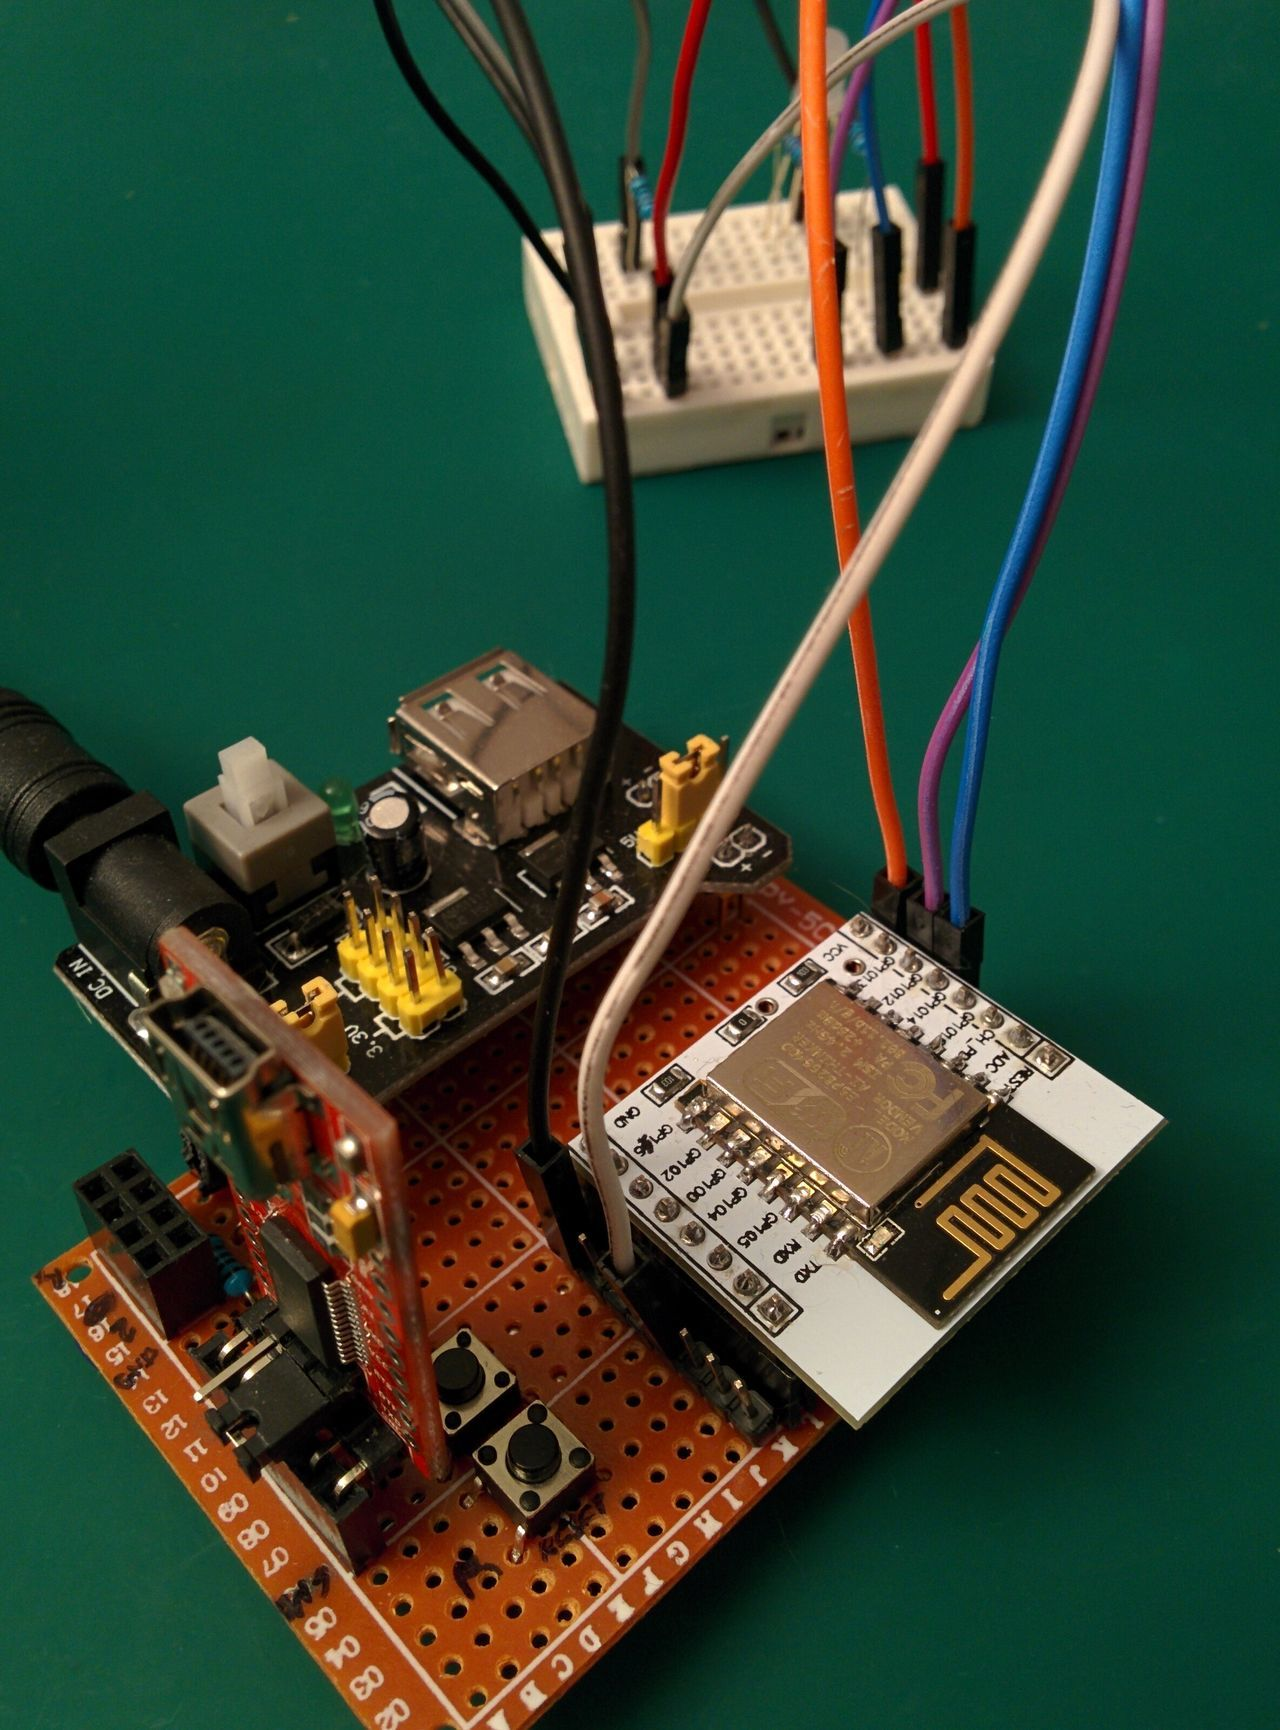 Perfboard with components